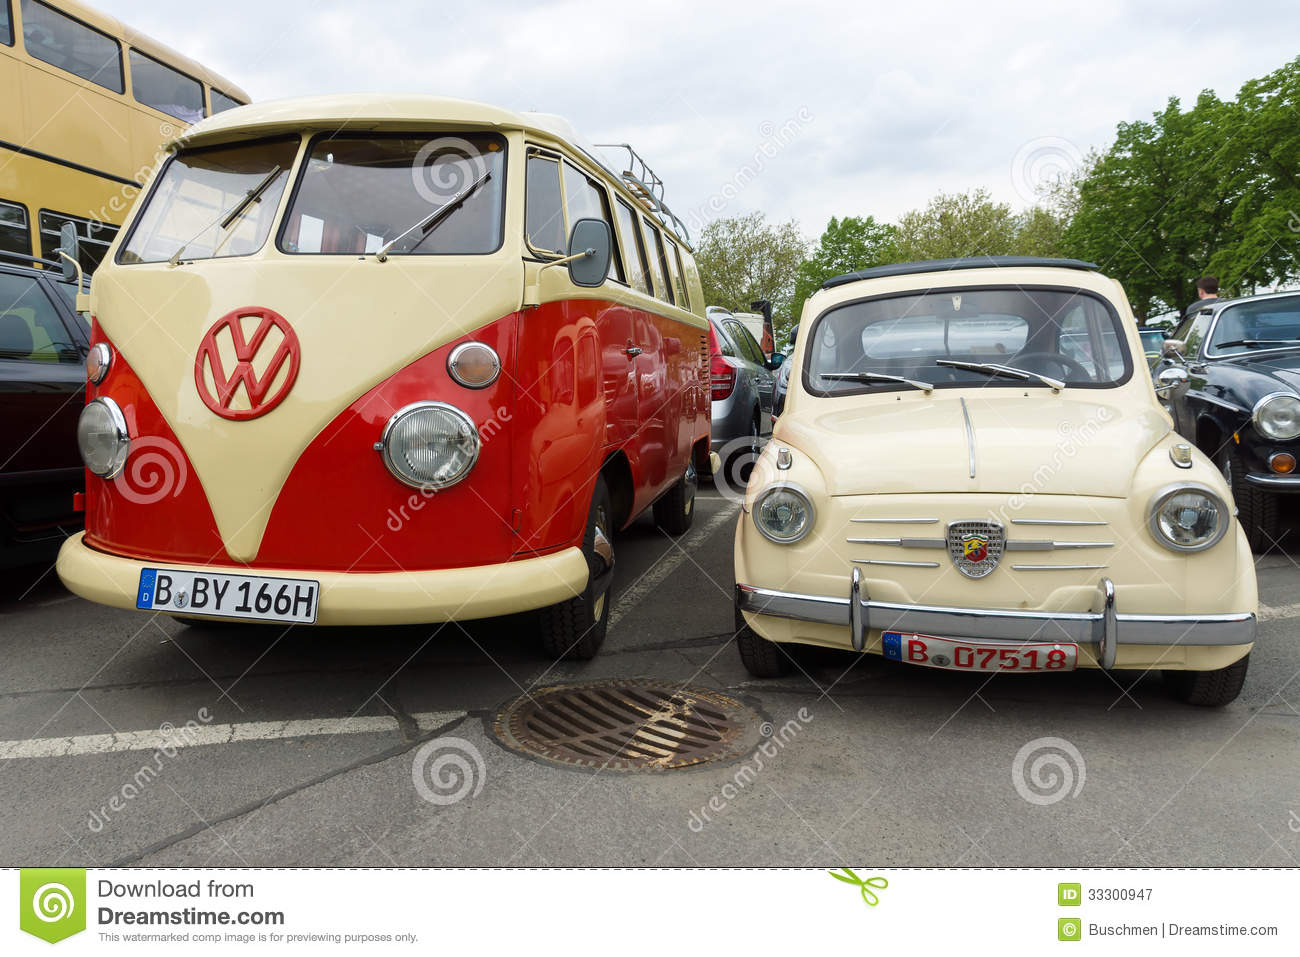 small car fiat abarth 750 and minibus volkswagen type 2. Black Bedroom Furniture Sets. Home Design Ideas